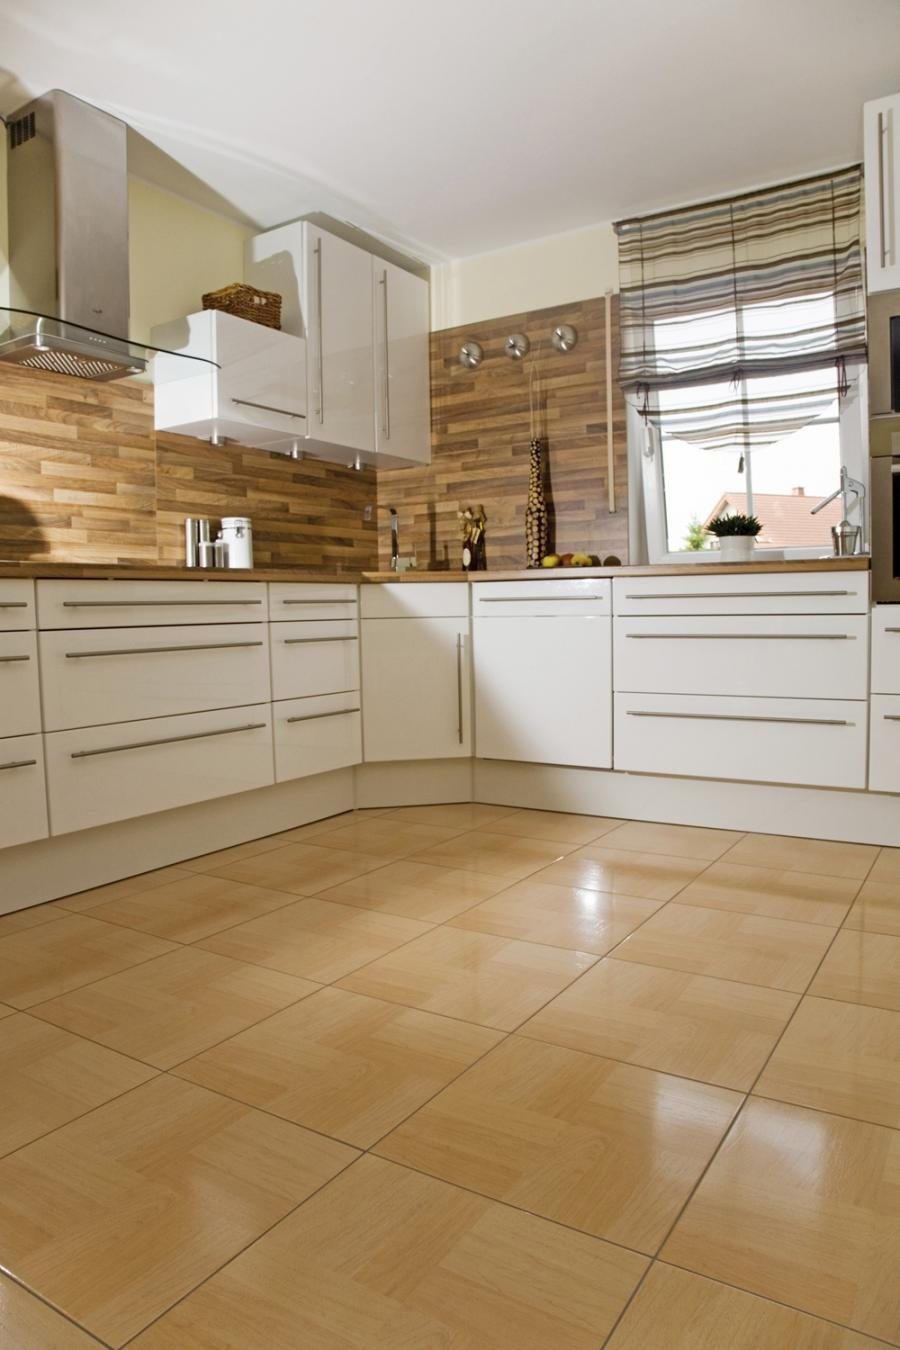 Kitchen ceramic tile floor photos for Floors tiles for kitchen